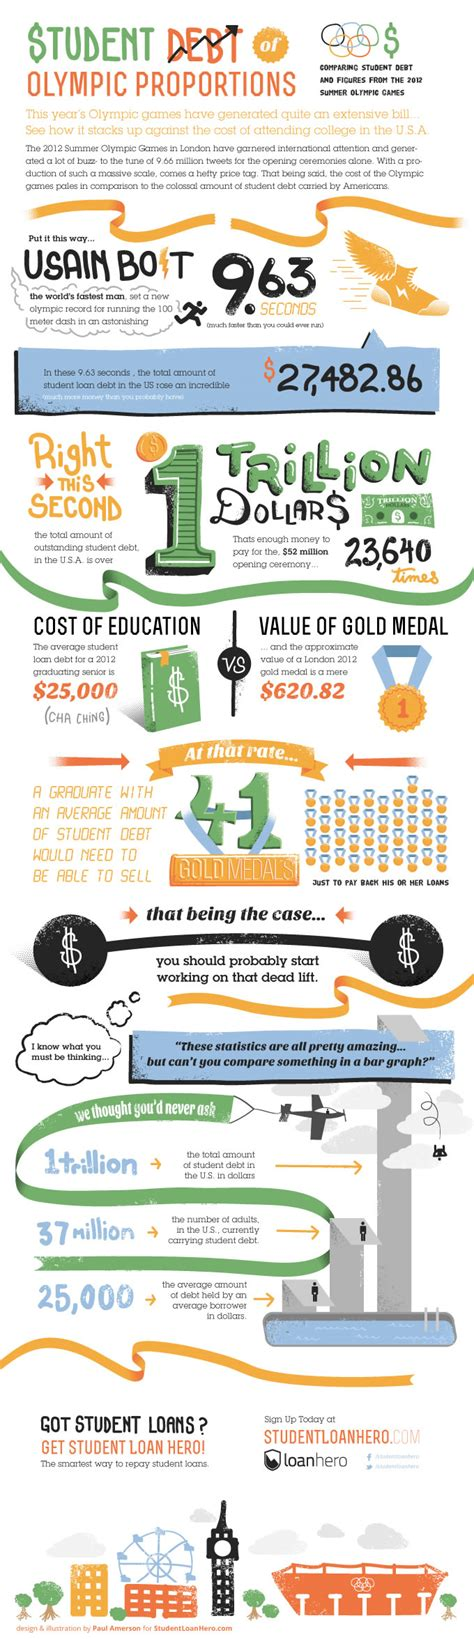 This Infographic Examines How Much Theu S Debt Infographic Loan Debt Of Olympic Proportions